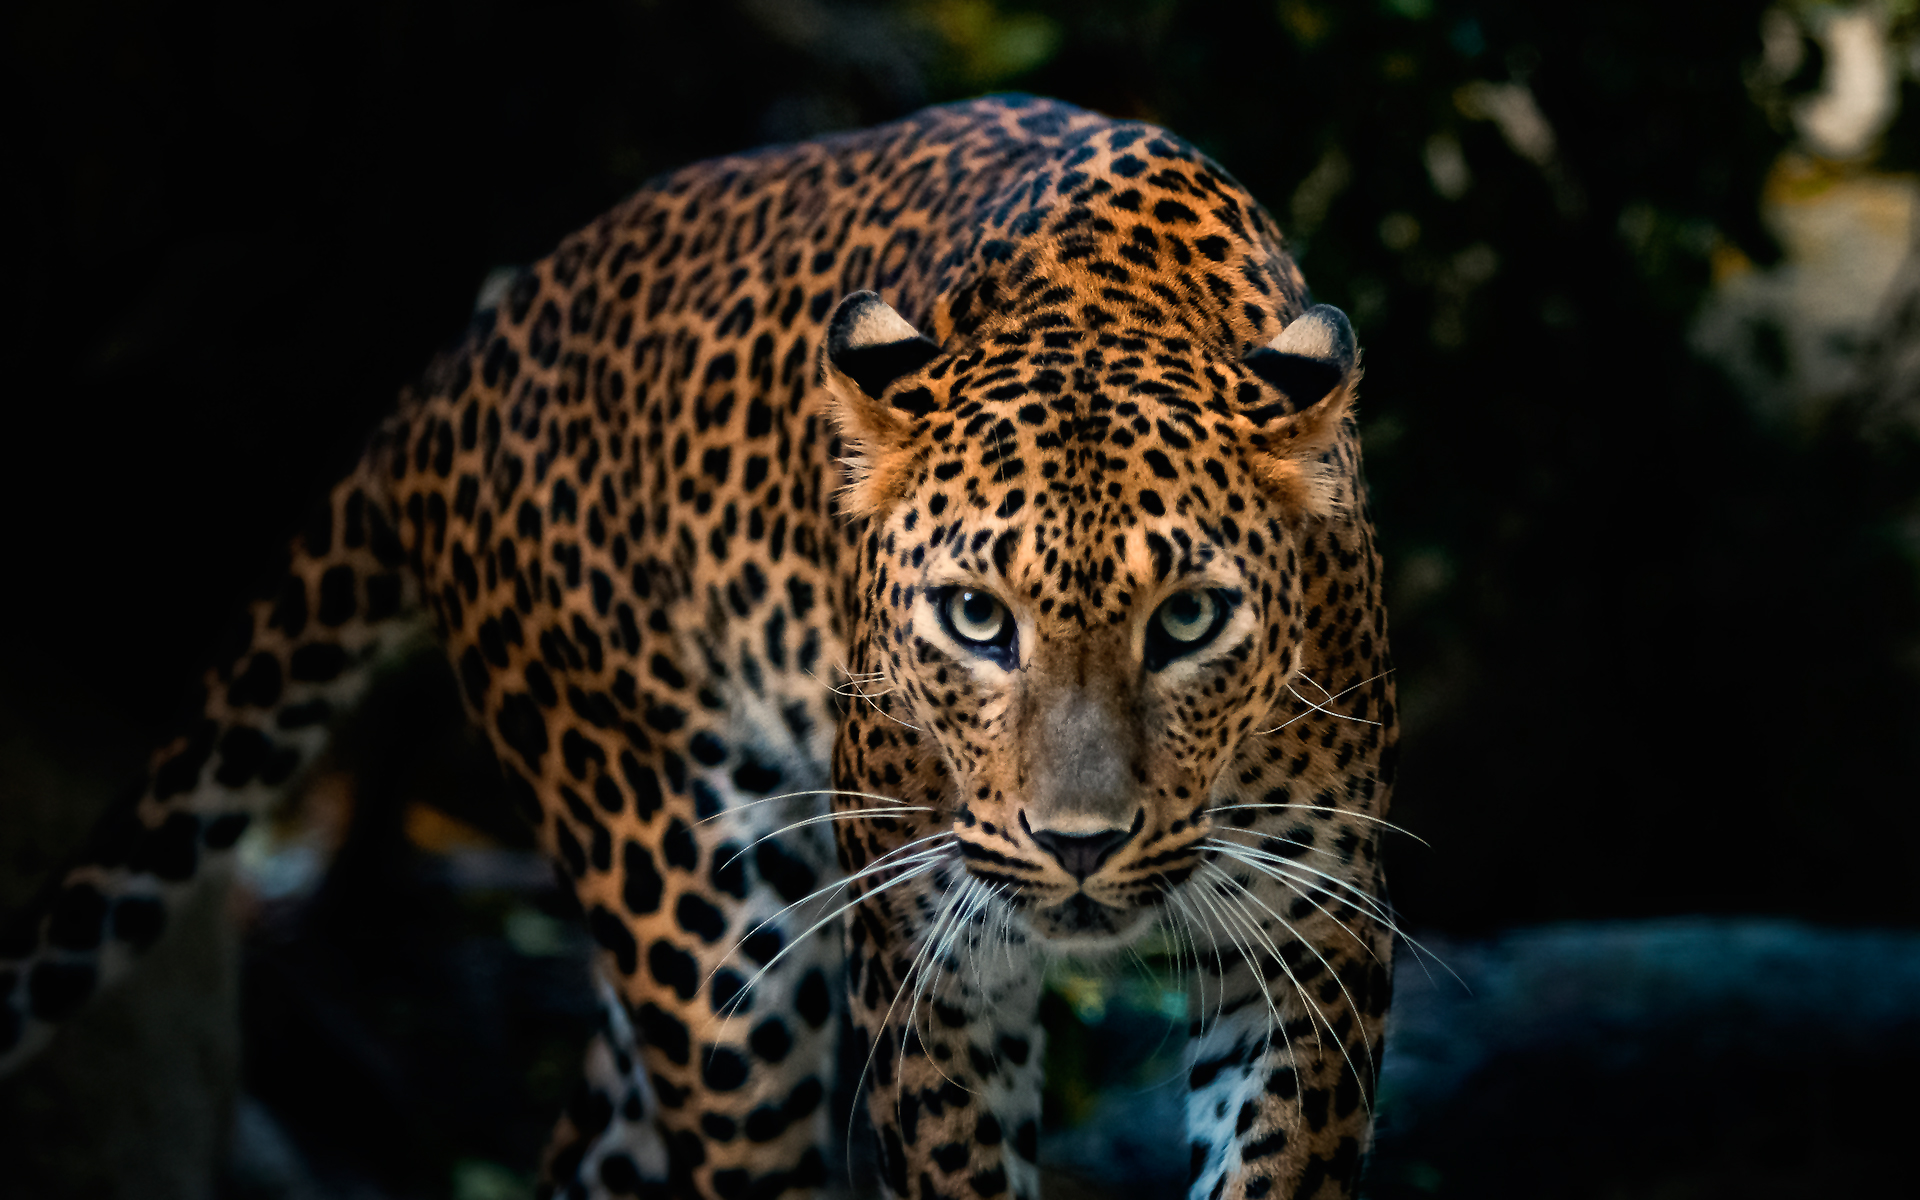 Leopard Wallpapers Amazing Wallpaperz 1920x1200